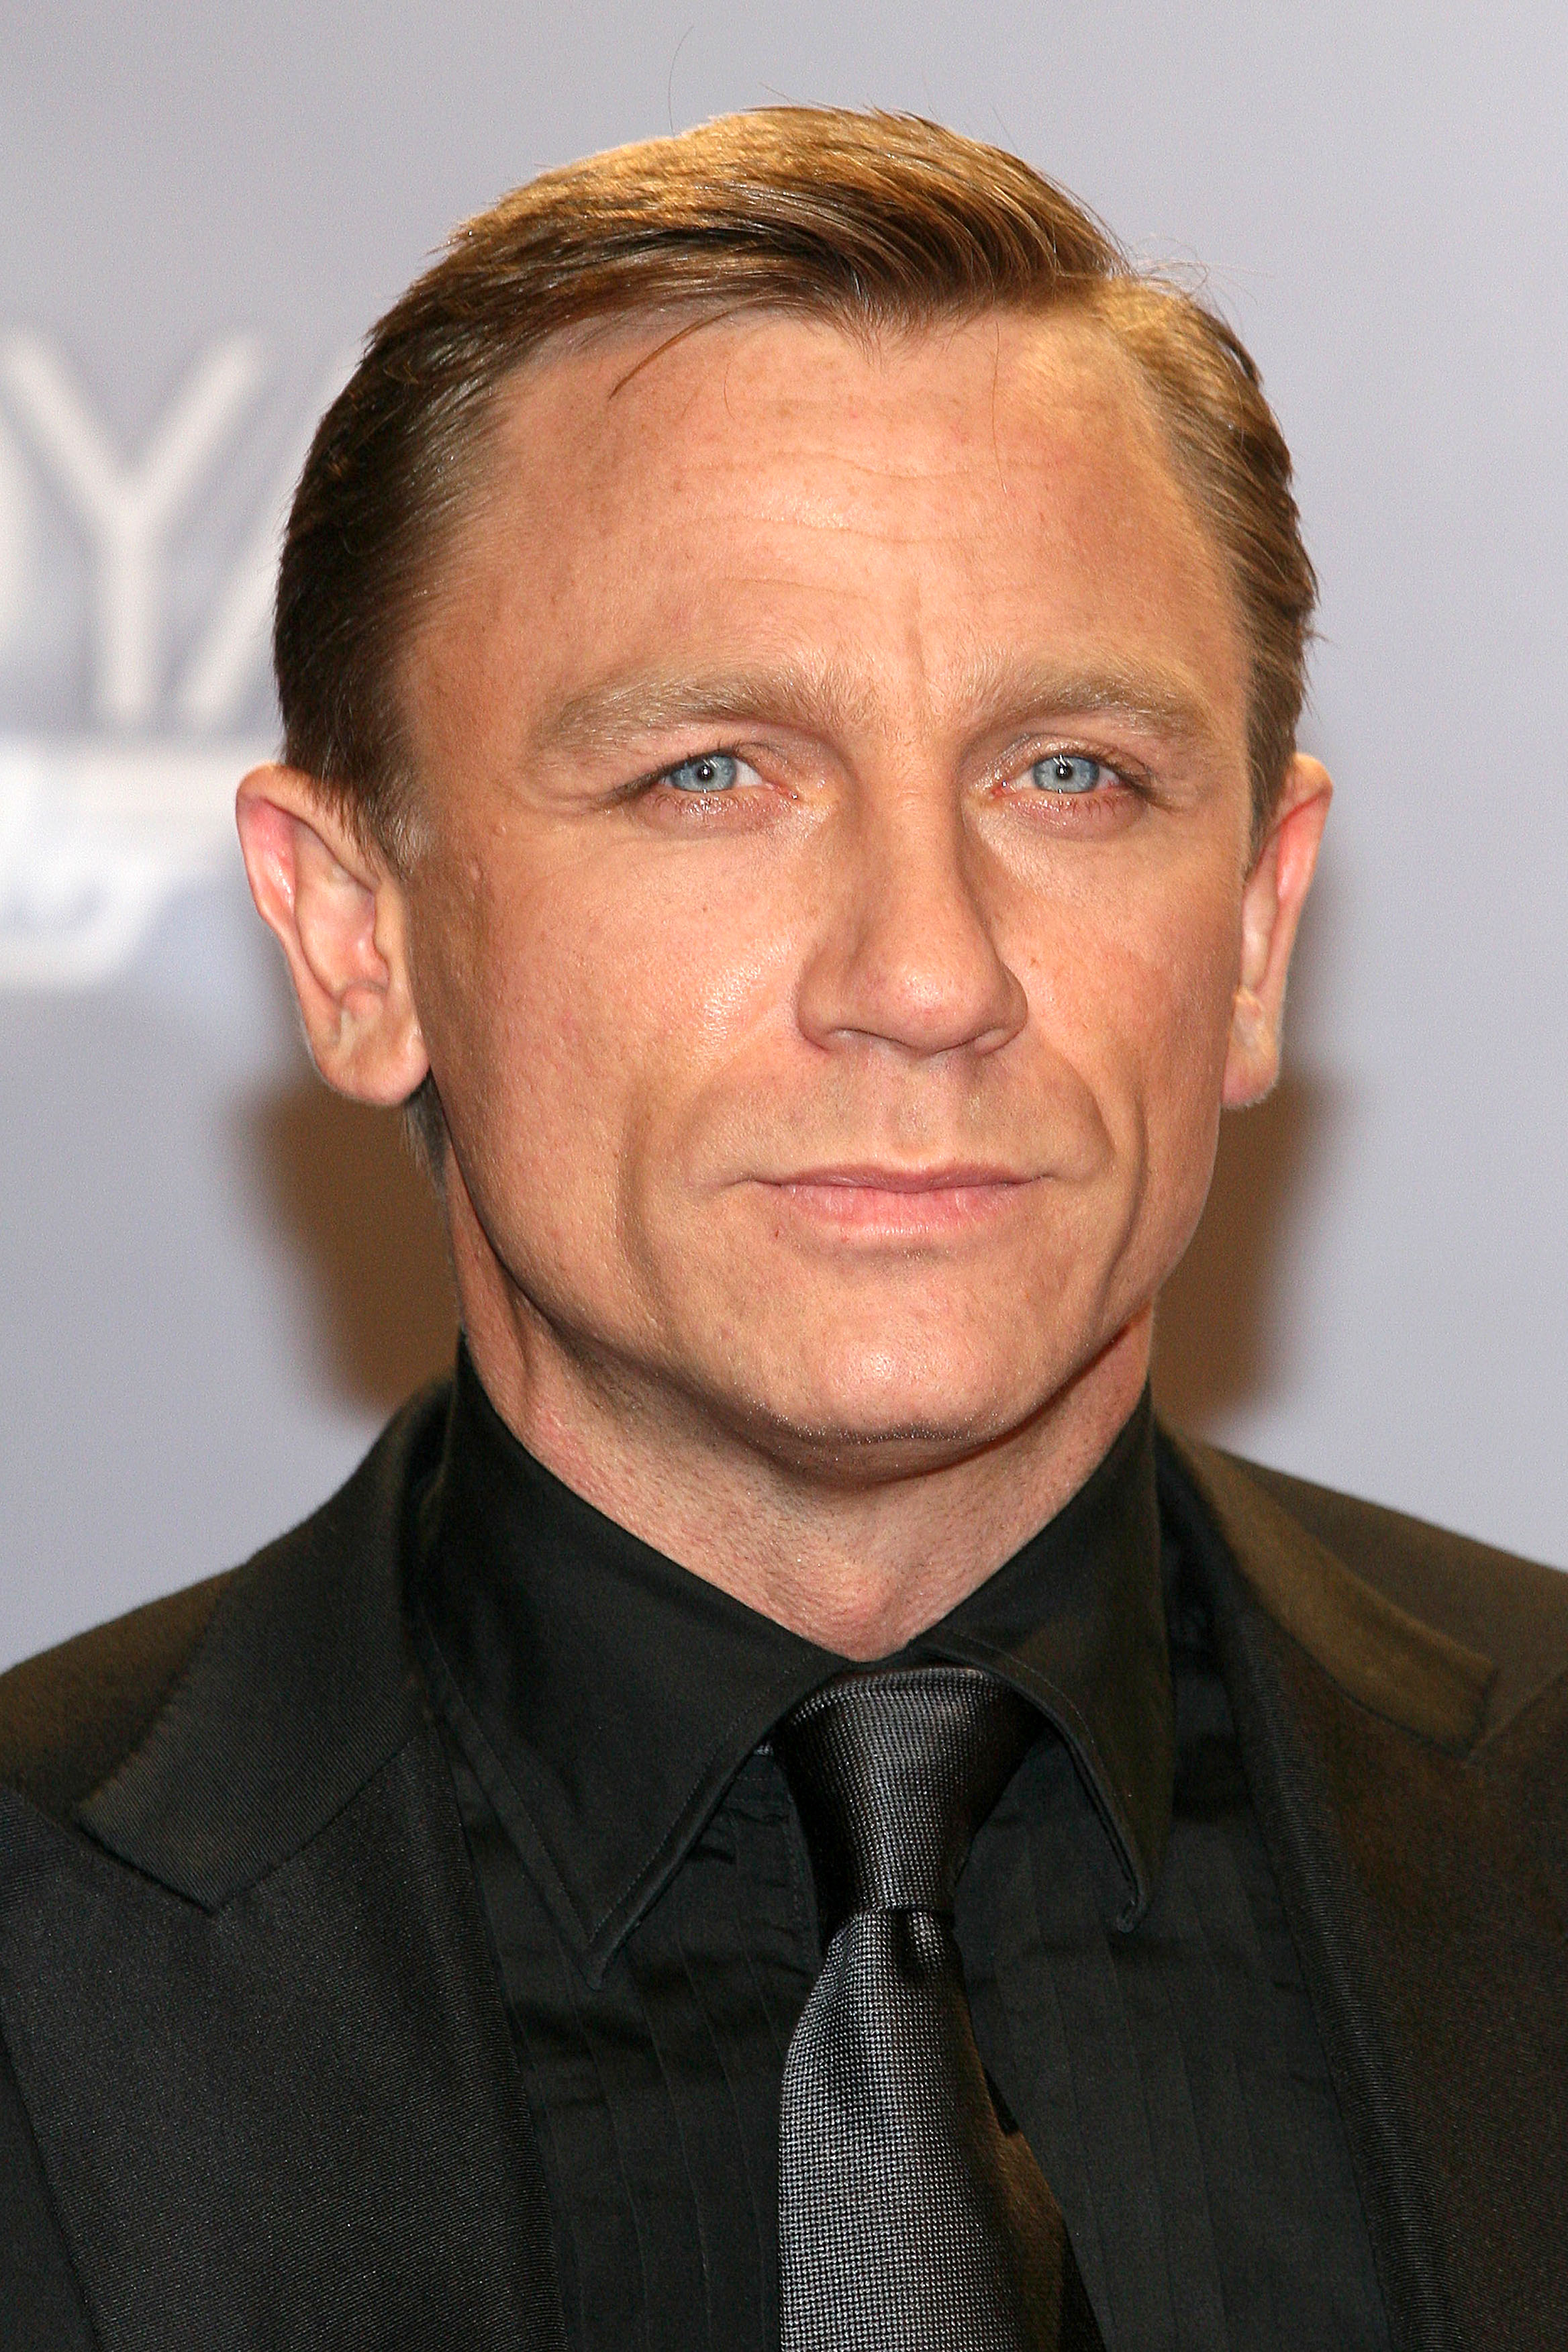 Daniel Craig: Bond actor takes time out to appeal for ... Daniel Craig